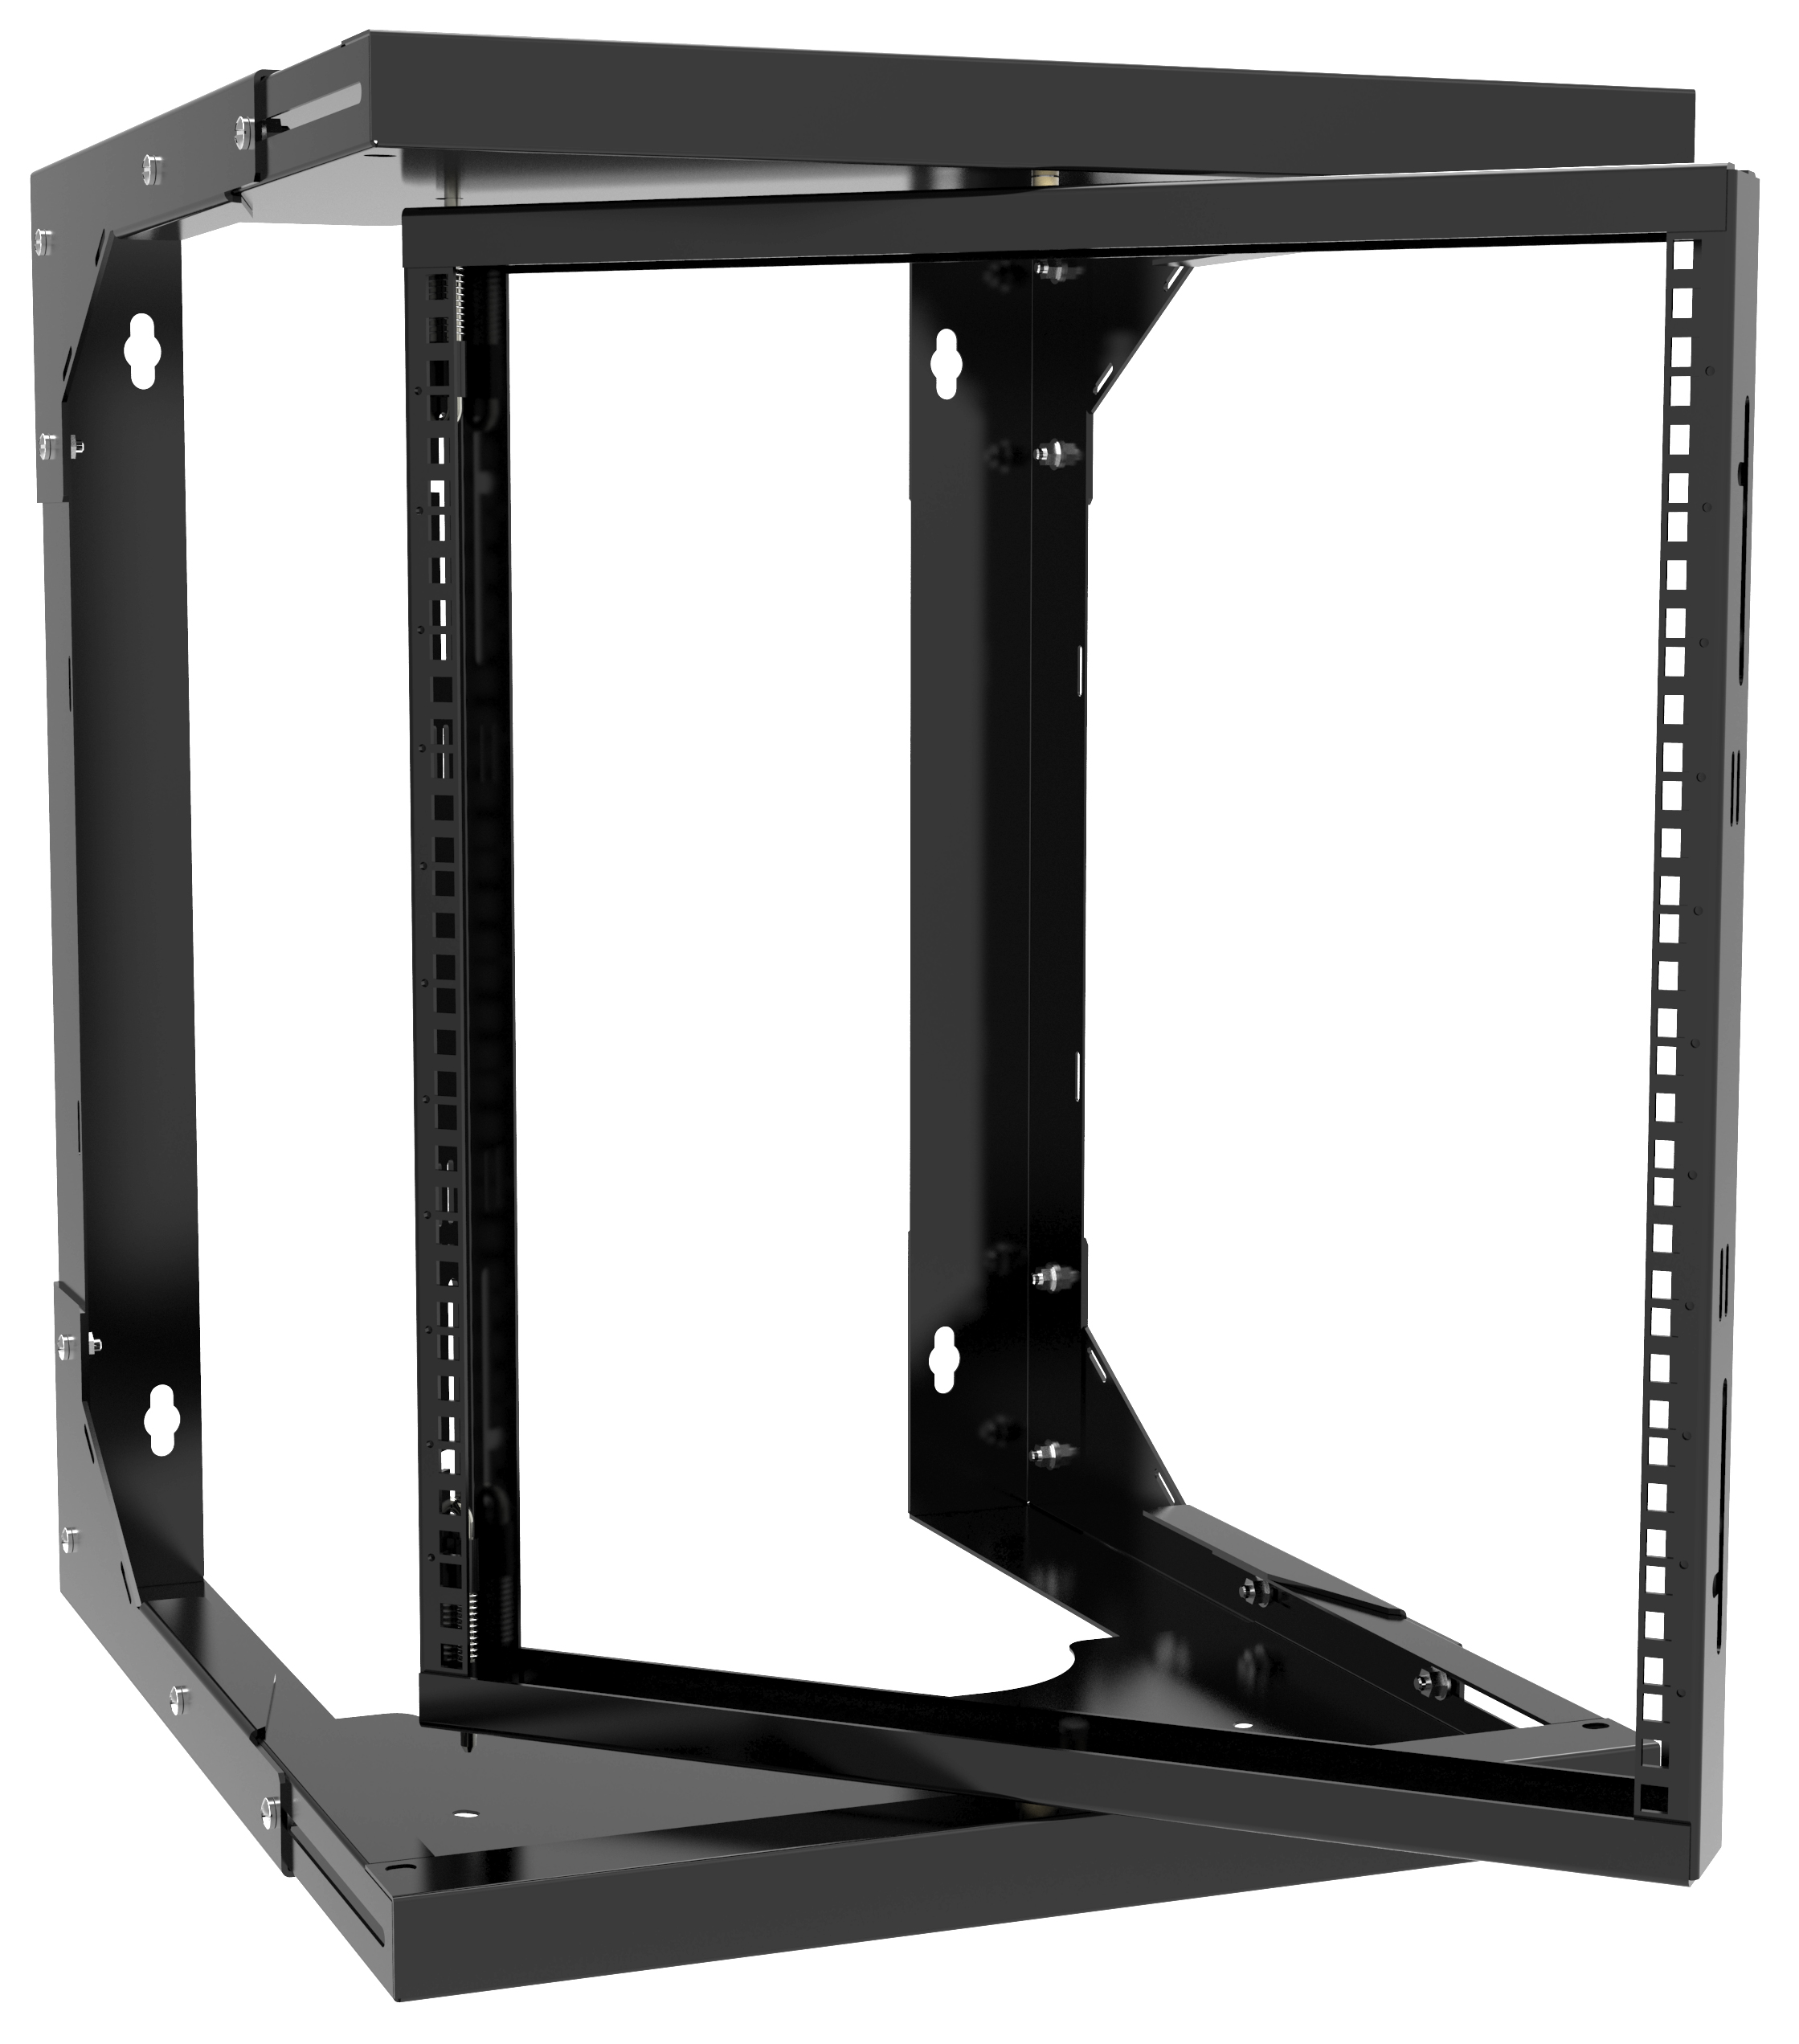 20151223143610_2013-10-21-hammond-manufacturing-launches-new-adjustable-depth-pivoting-wall-mount-rack.jpg